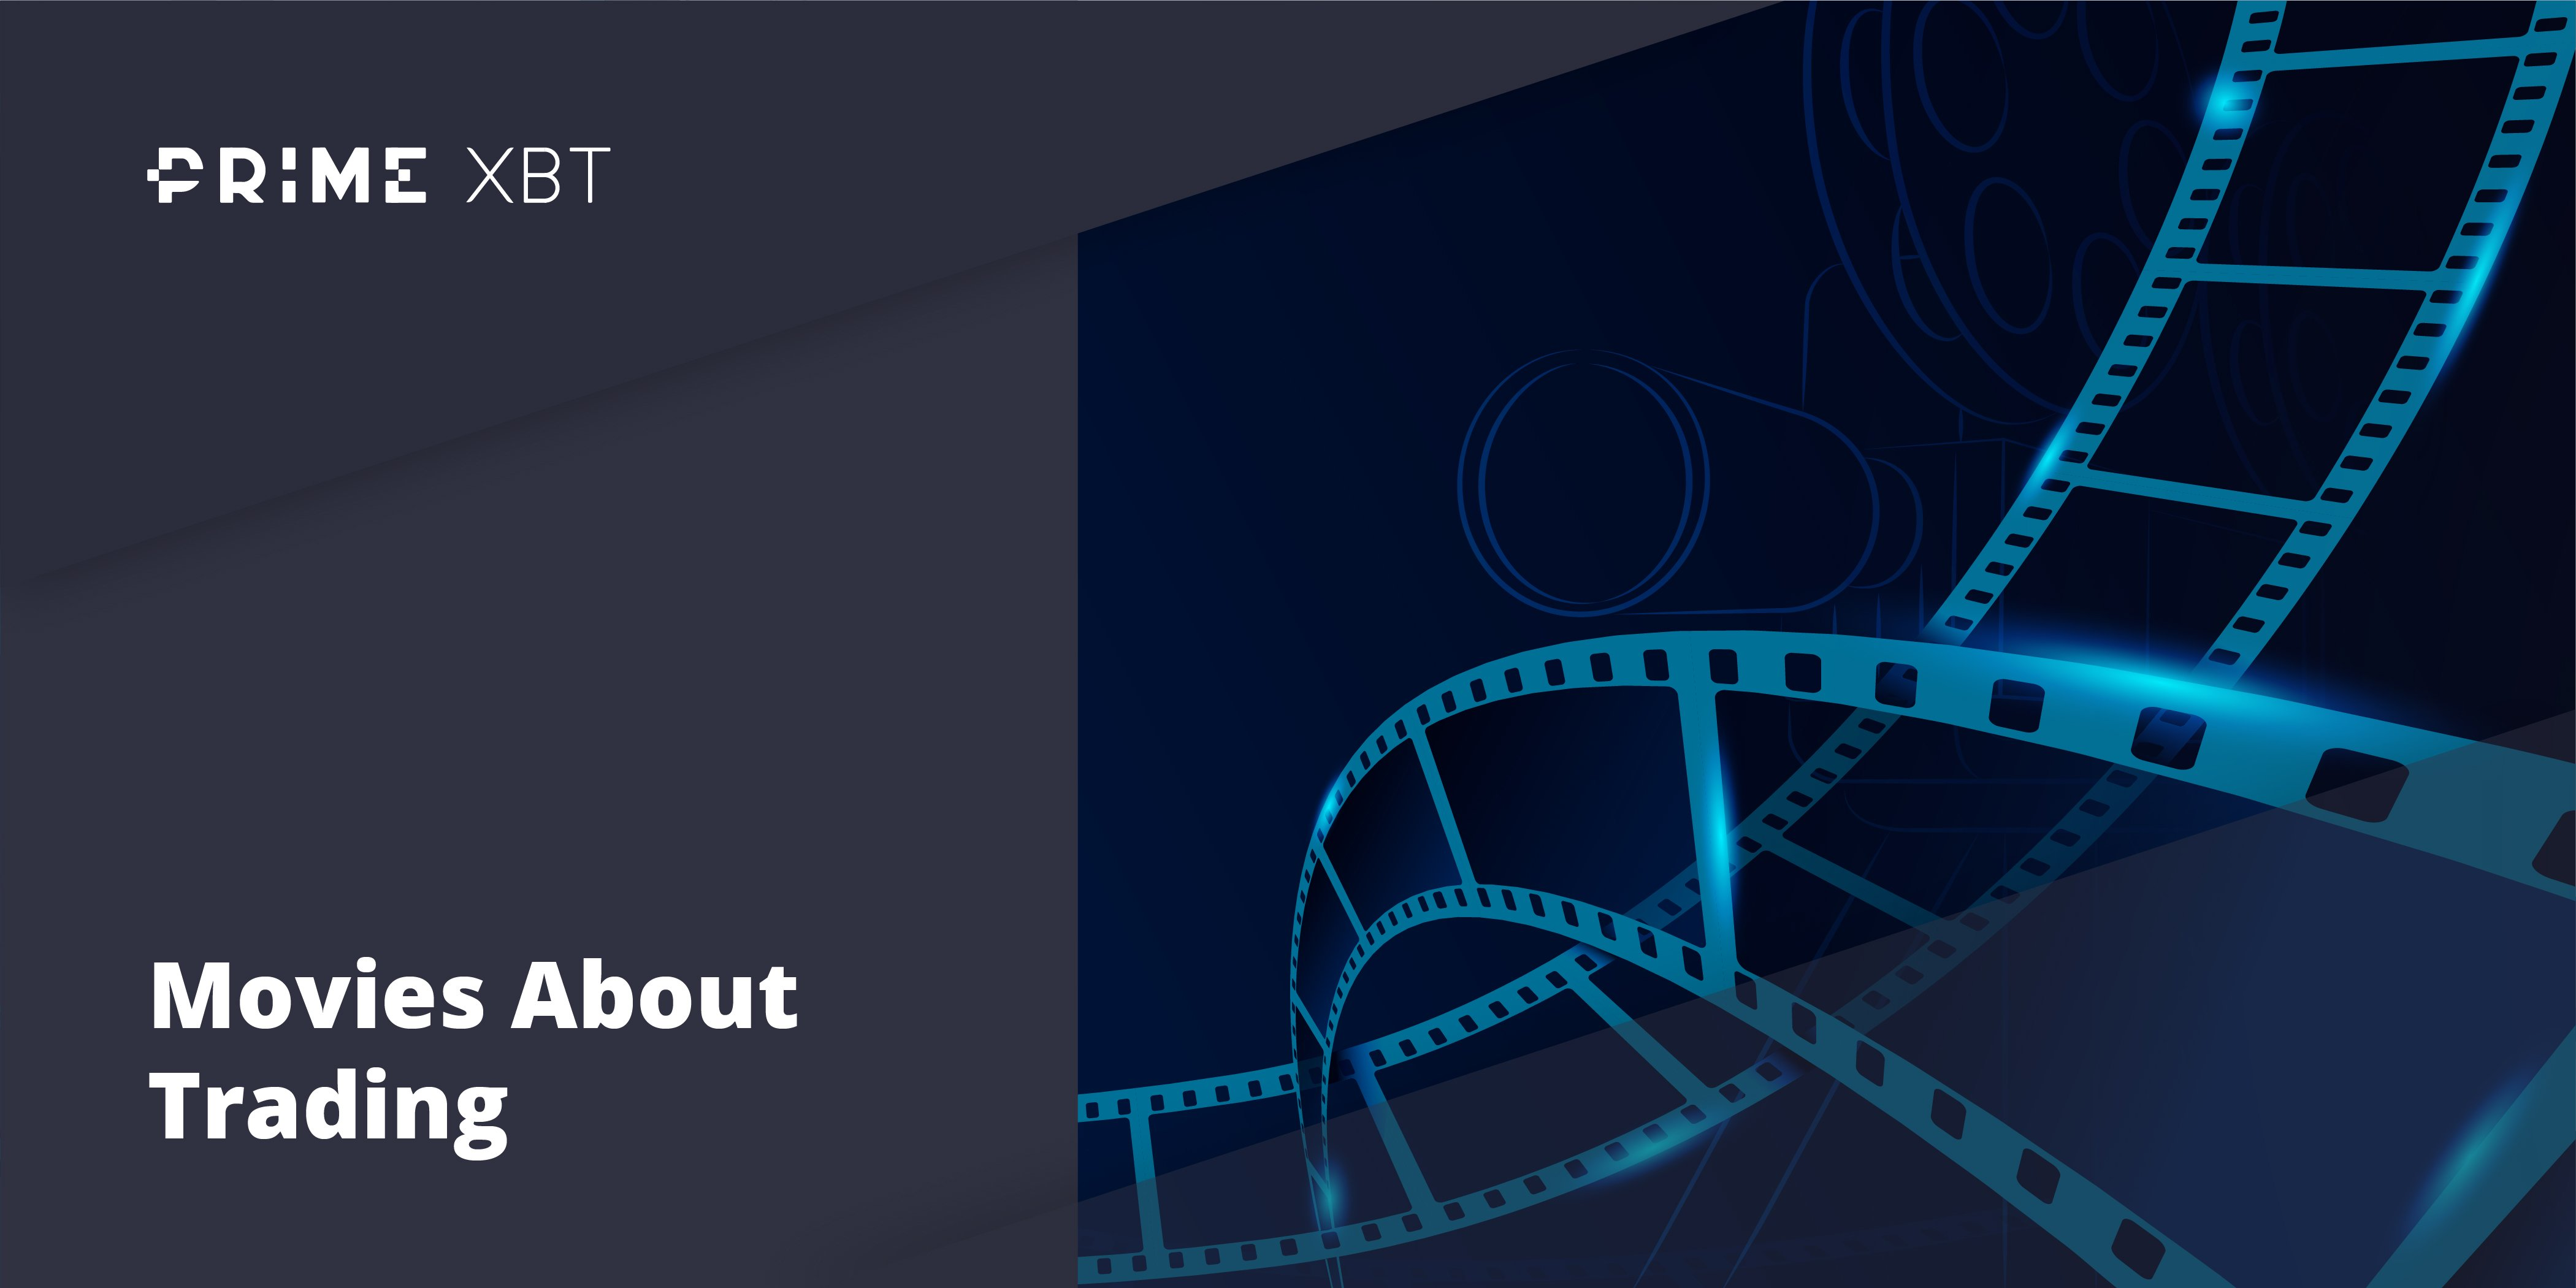 The Definitive List of Must-Watch Movies About Trading - 4B6BC1AF FE3C 4561 AC26 97A14655166C